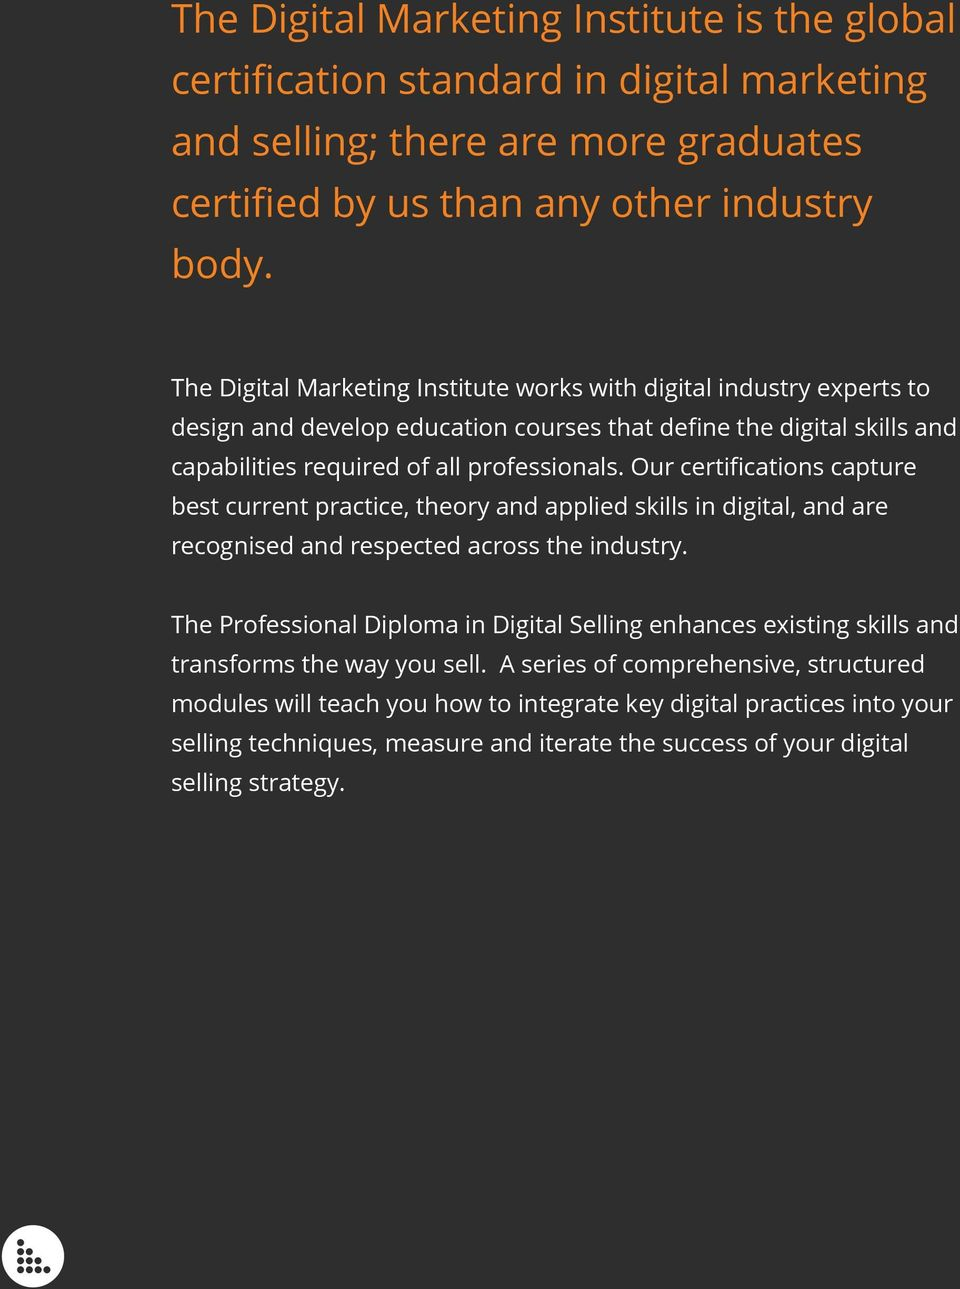 Our certifications capture best current practice, theory and applied skills in digital, and are recognised and respected across the industry.